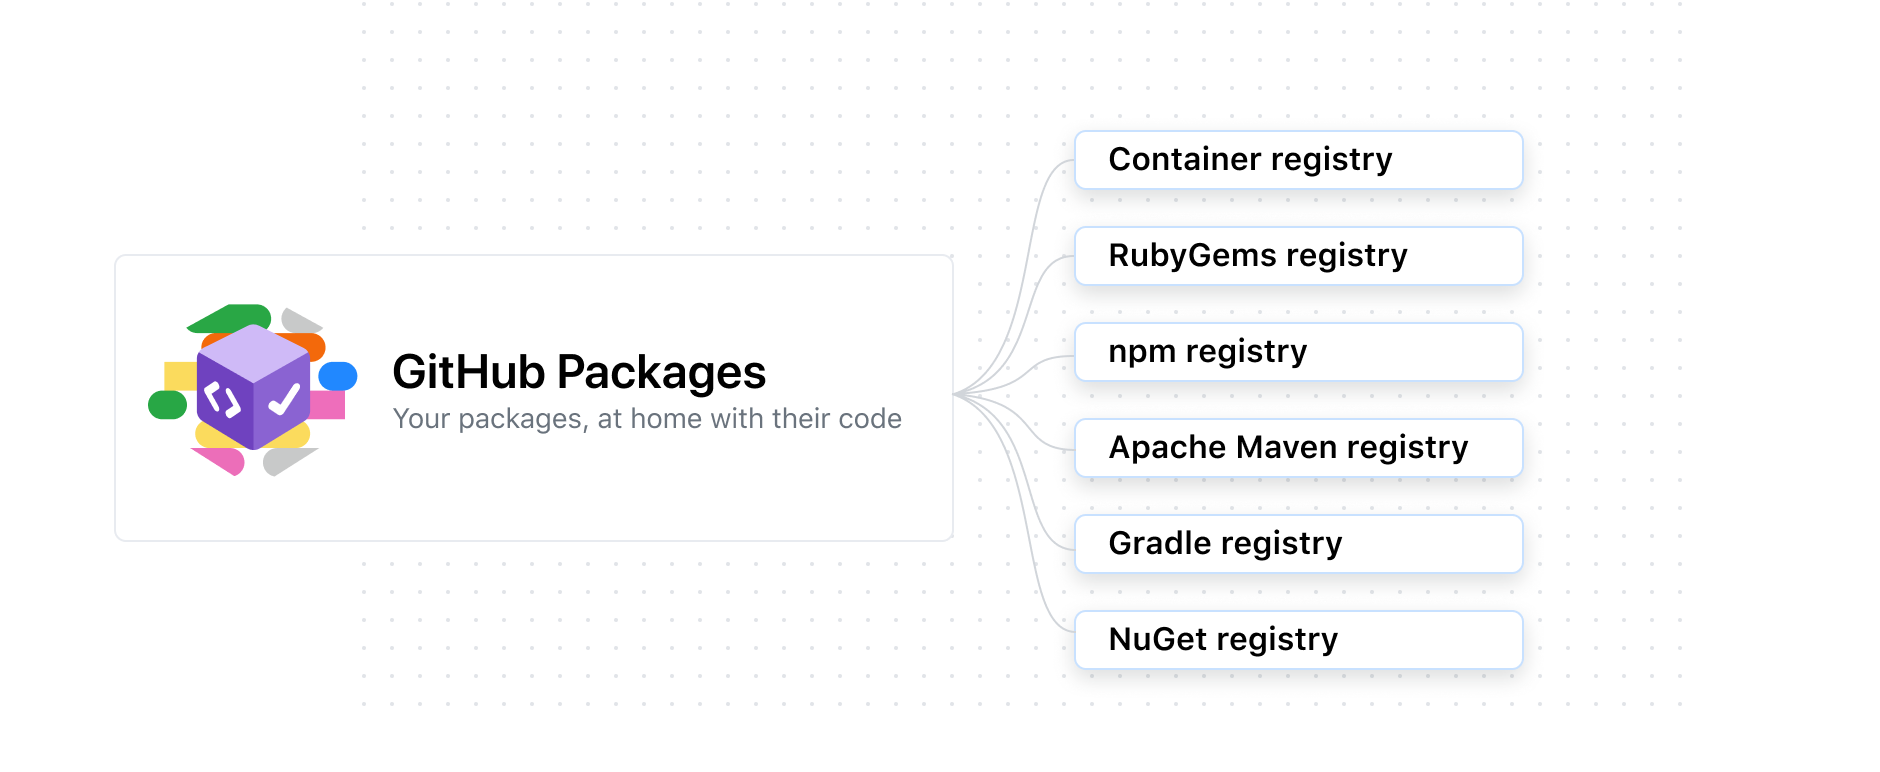 Diagram showing packages support for Docker, Container registry, RubyGems, npm, Apache Maven, NuGet, and Gradle